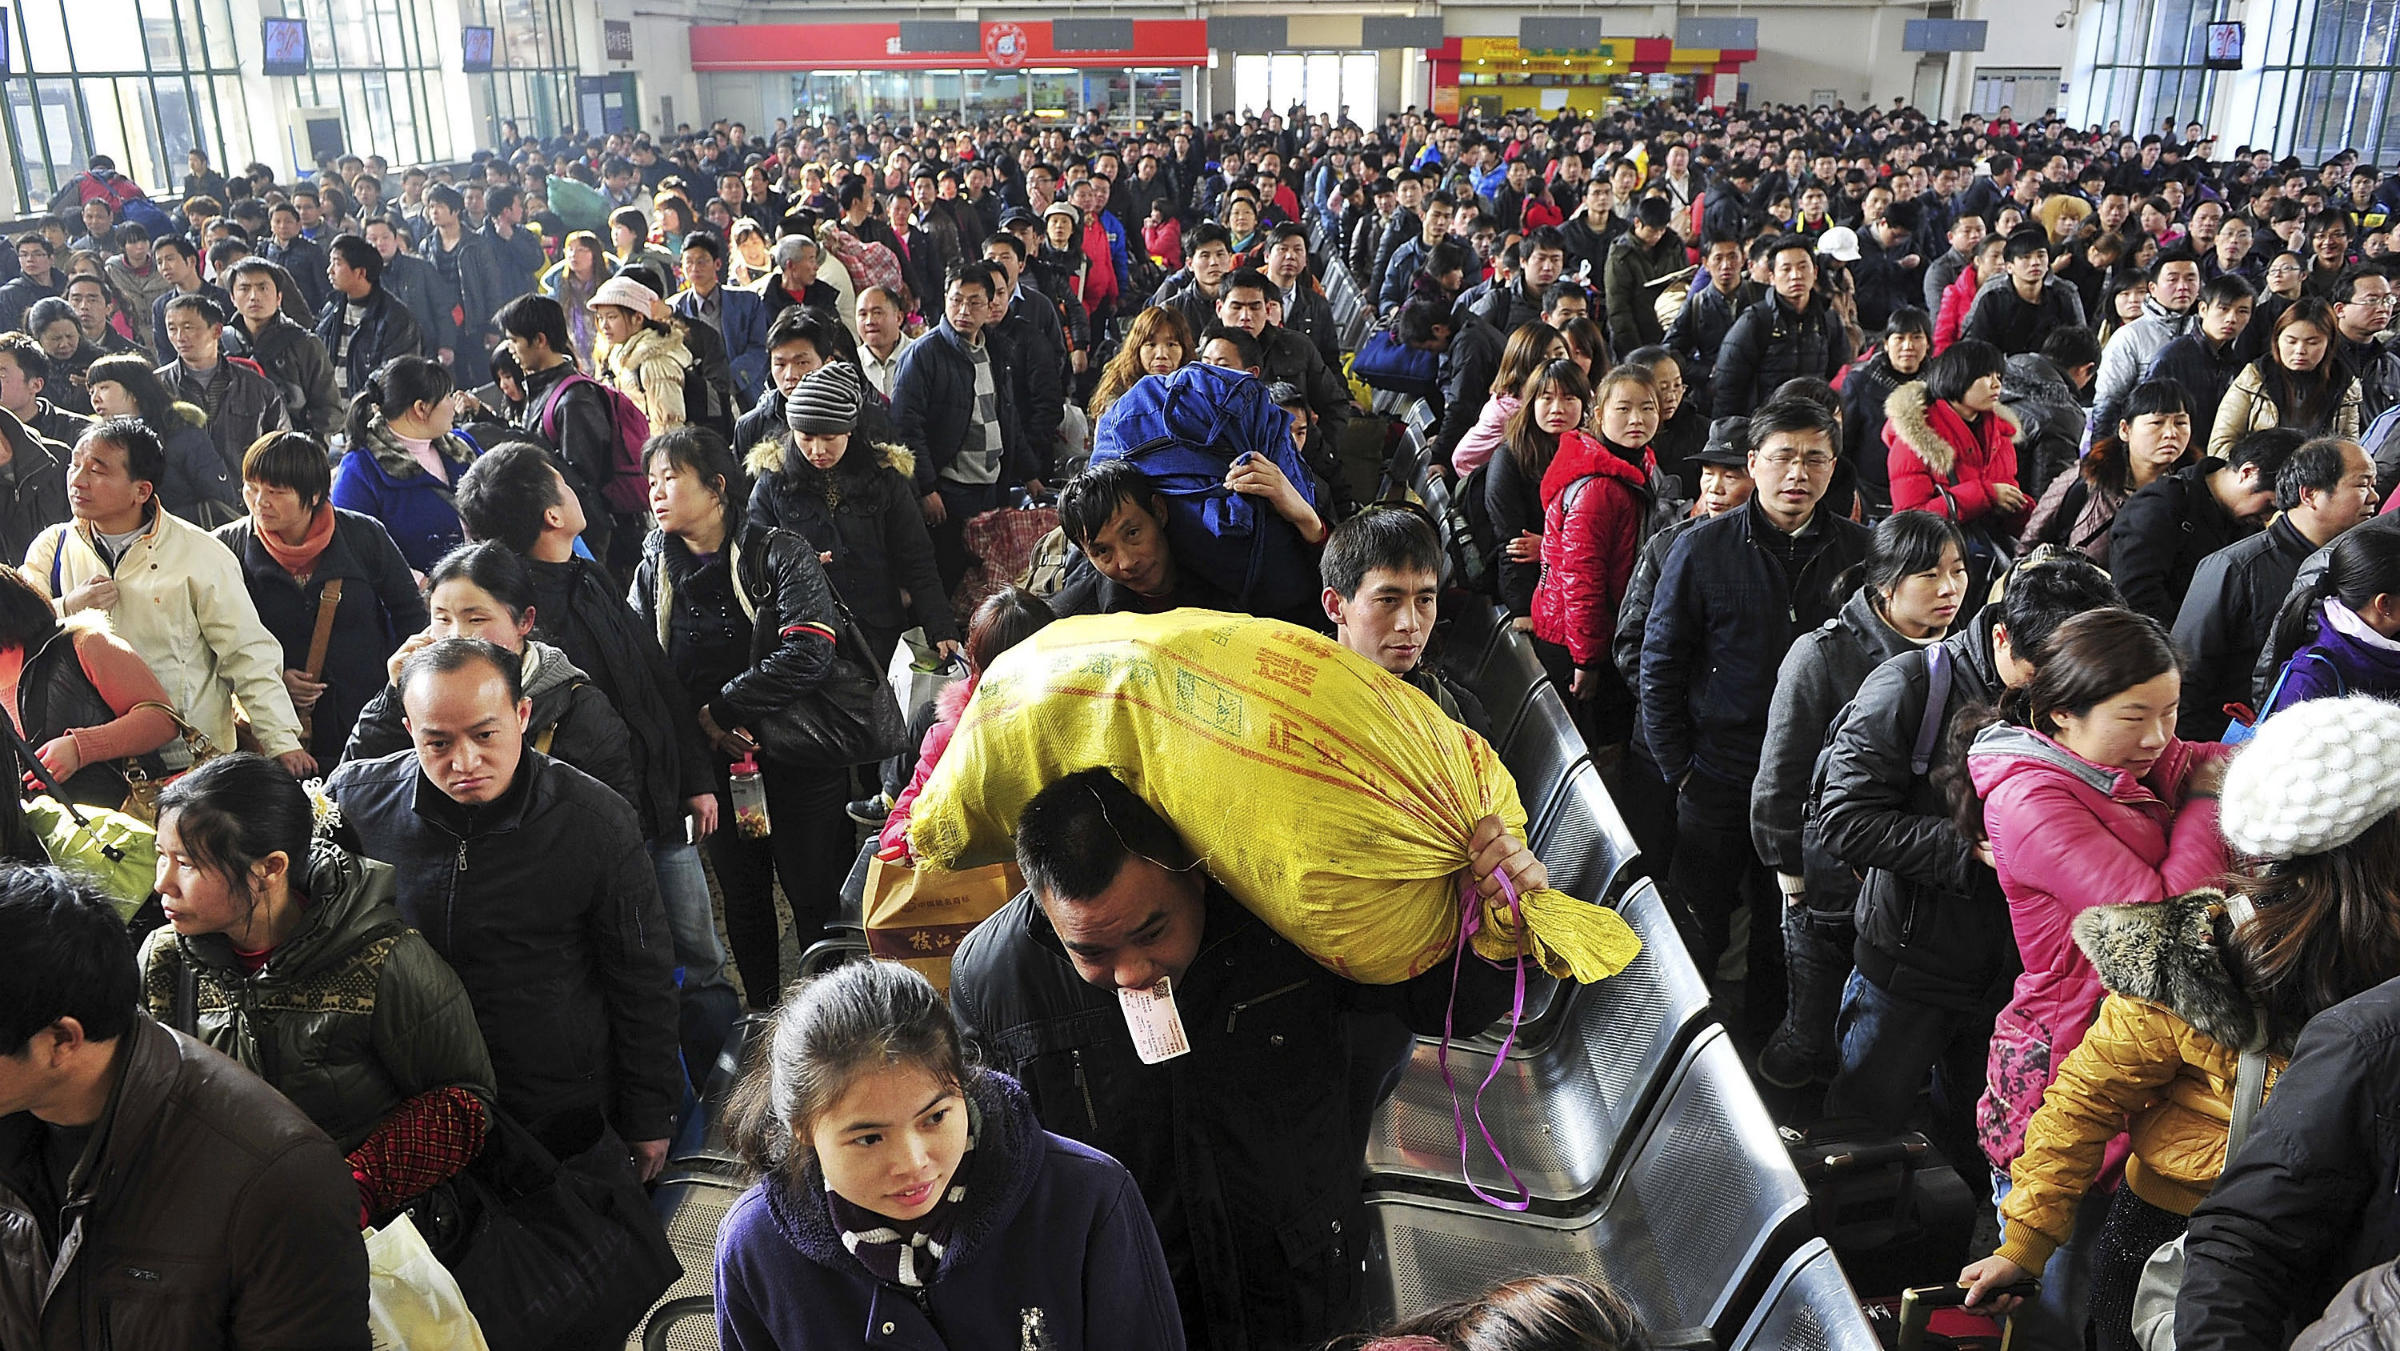 In this photo taken on Tuesday, Jan. 31, 2012, passengers wait to board trains at a railway station in Changsha, in central China's Hunan province. Millions of Chinese are expected to cram into China's train and bus network to return from home to work after the week-long Chinese Lunar New Year.